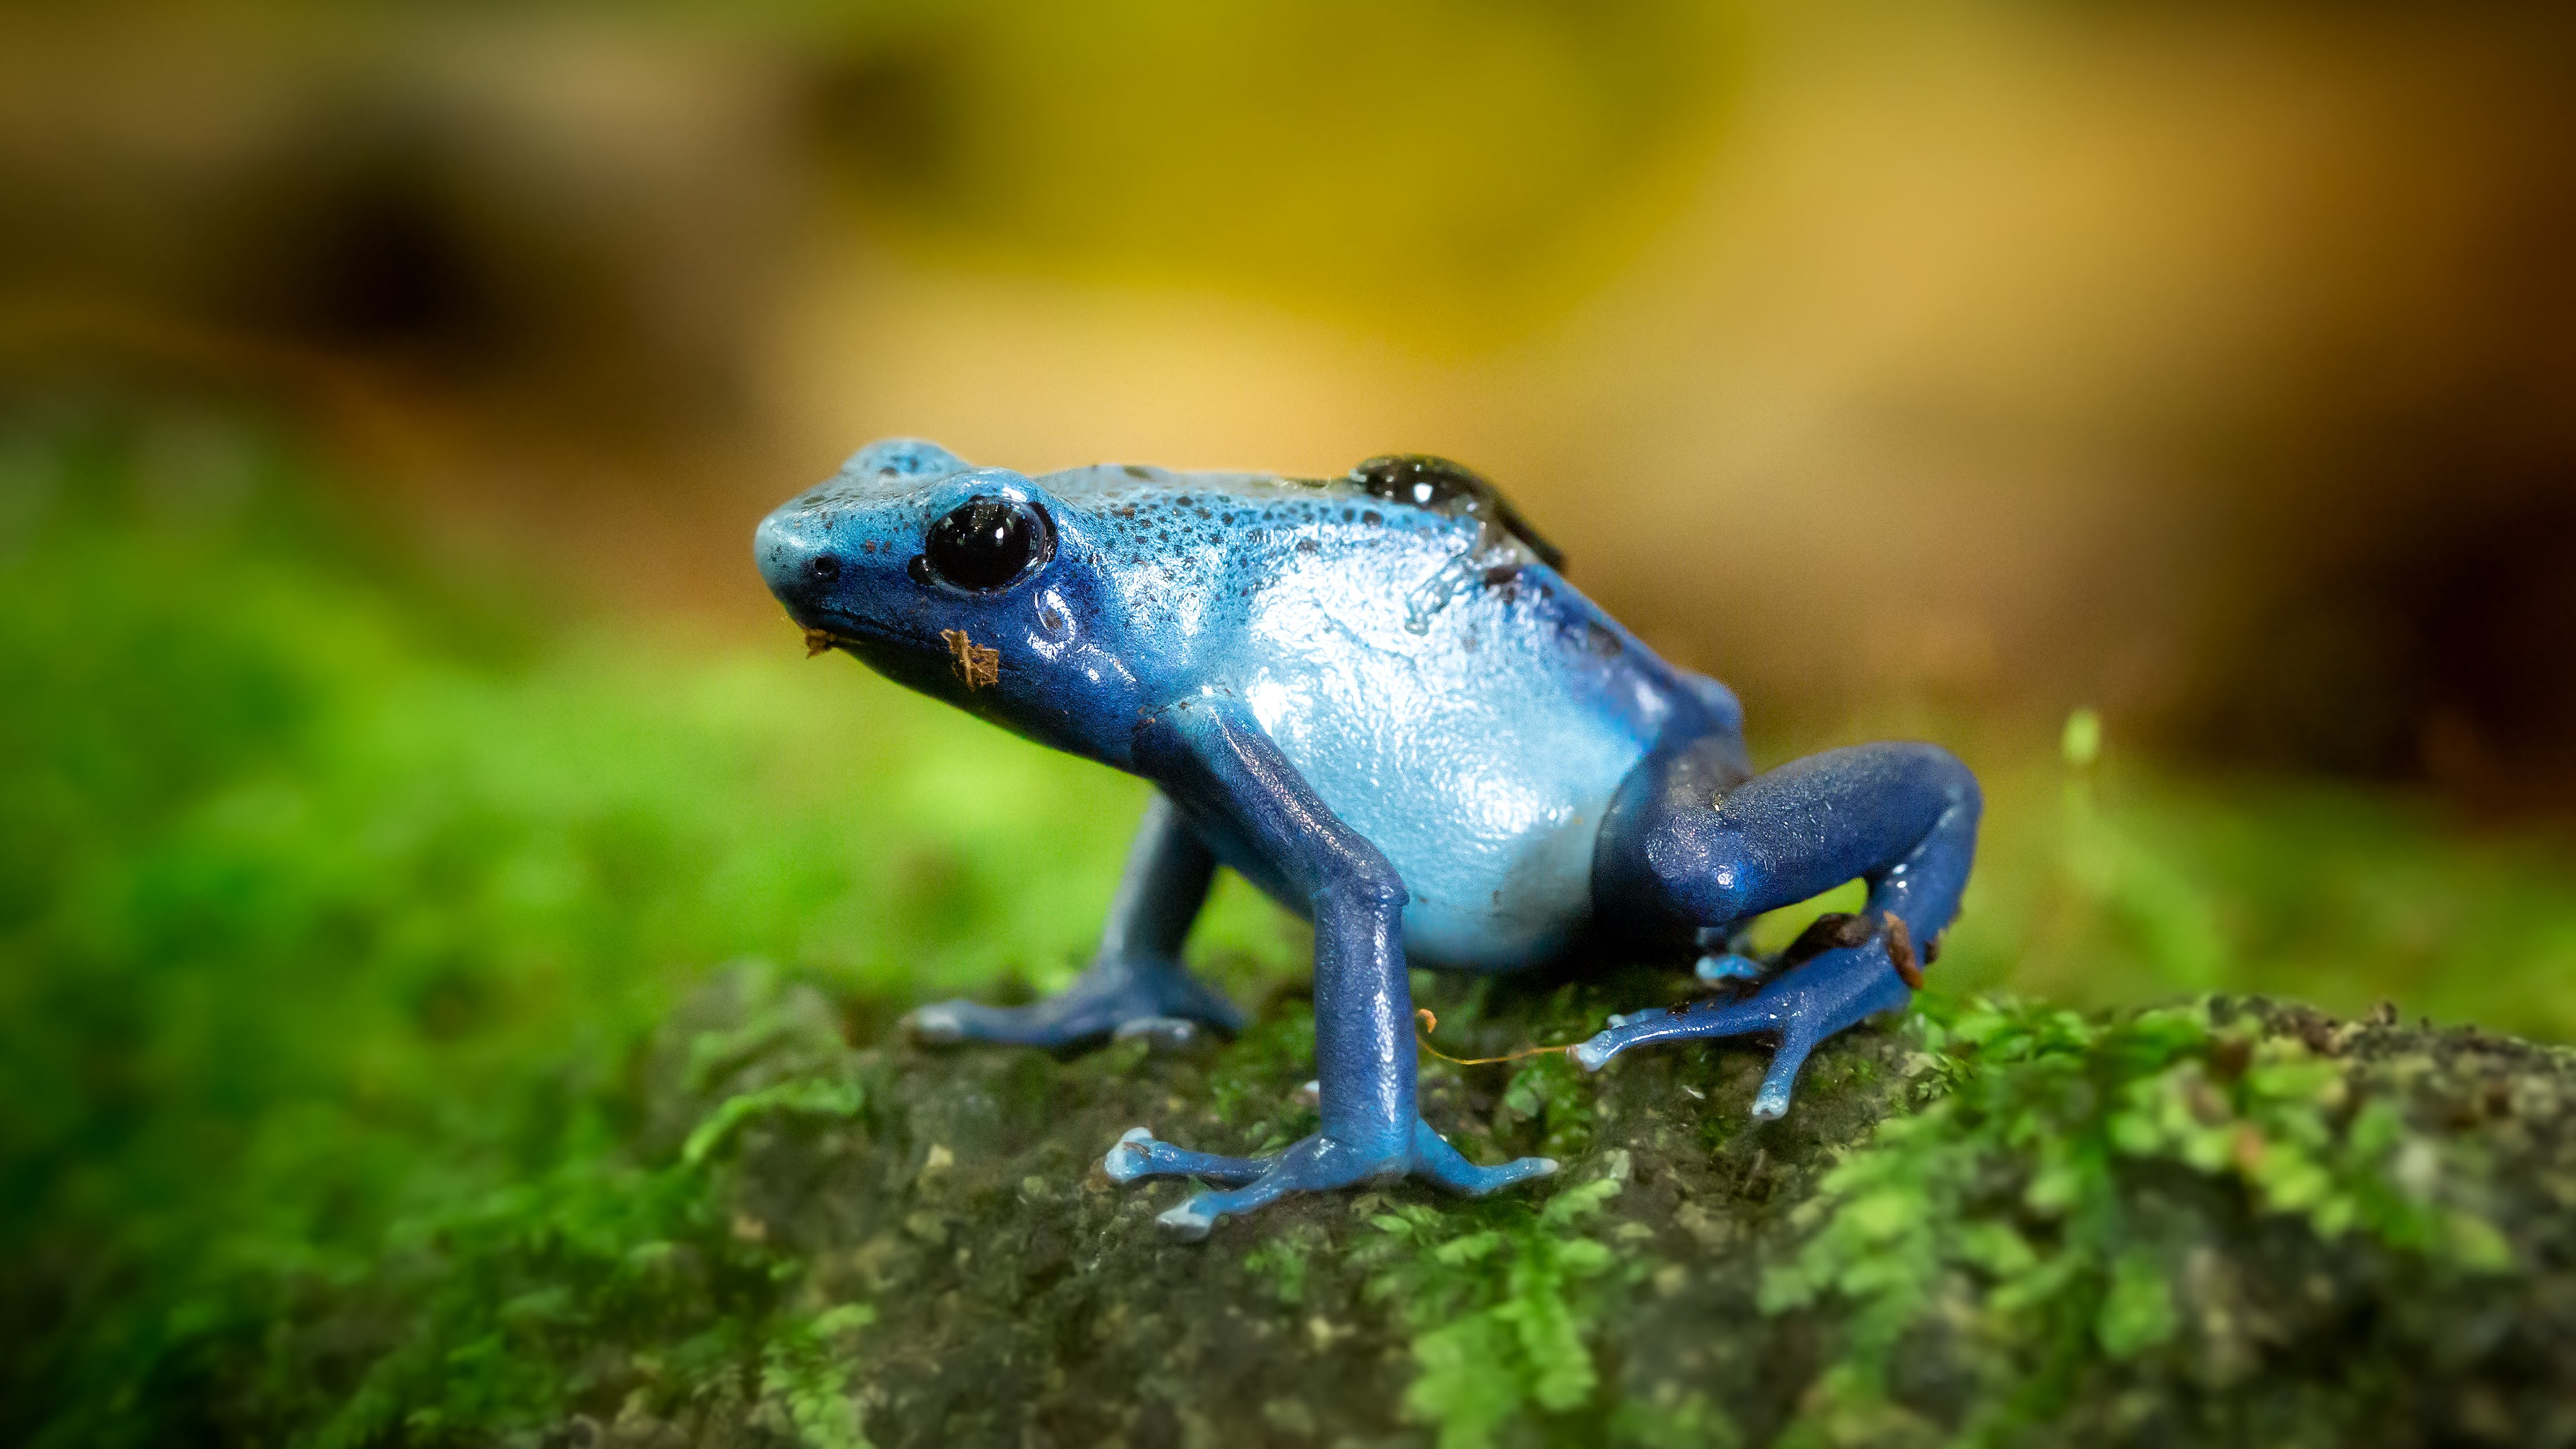 Closeup Photo of Blue Frog on Green Surface